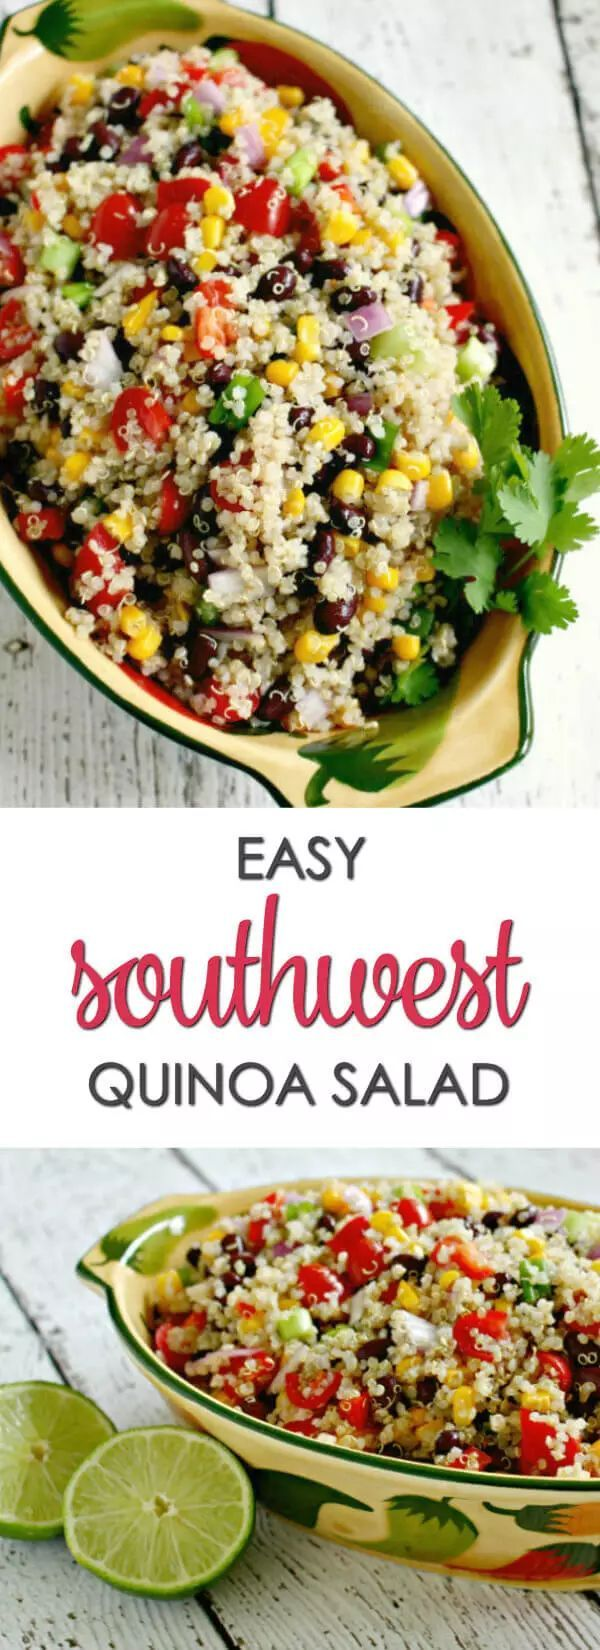 Photo of Southwest Quinoa Salad